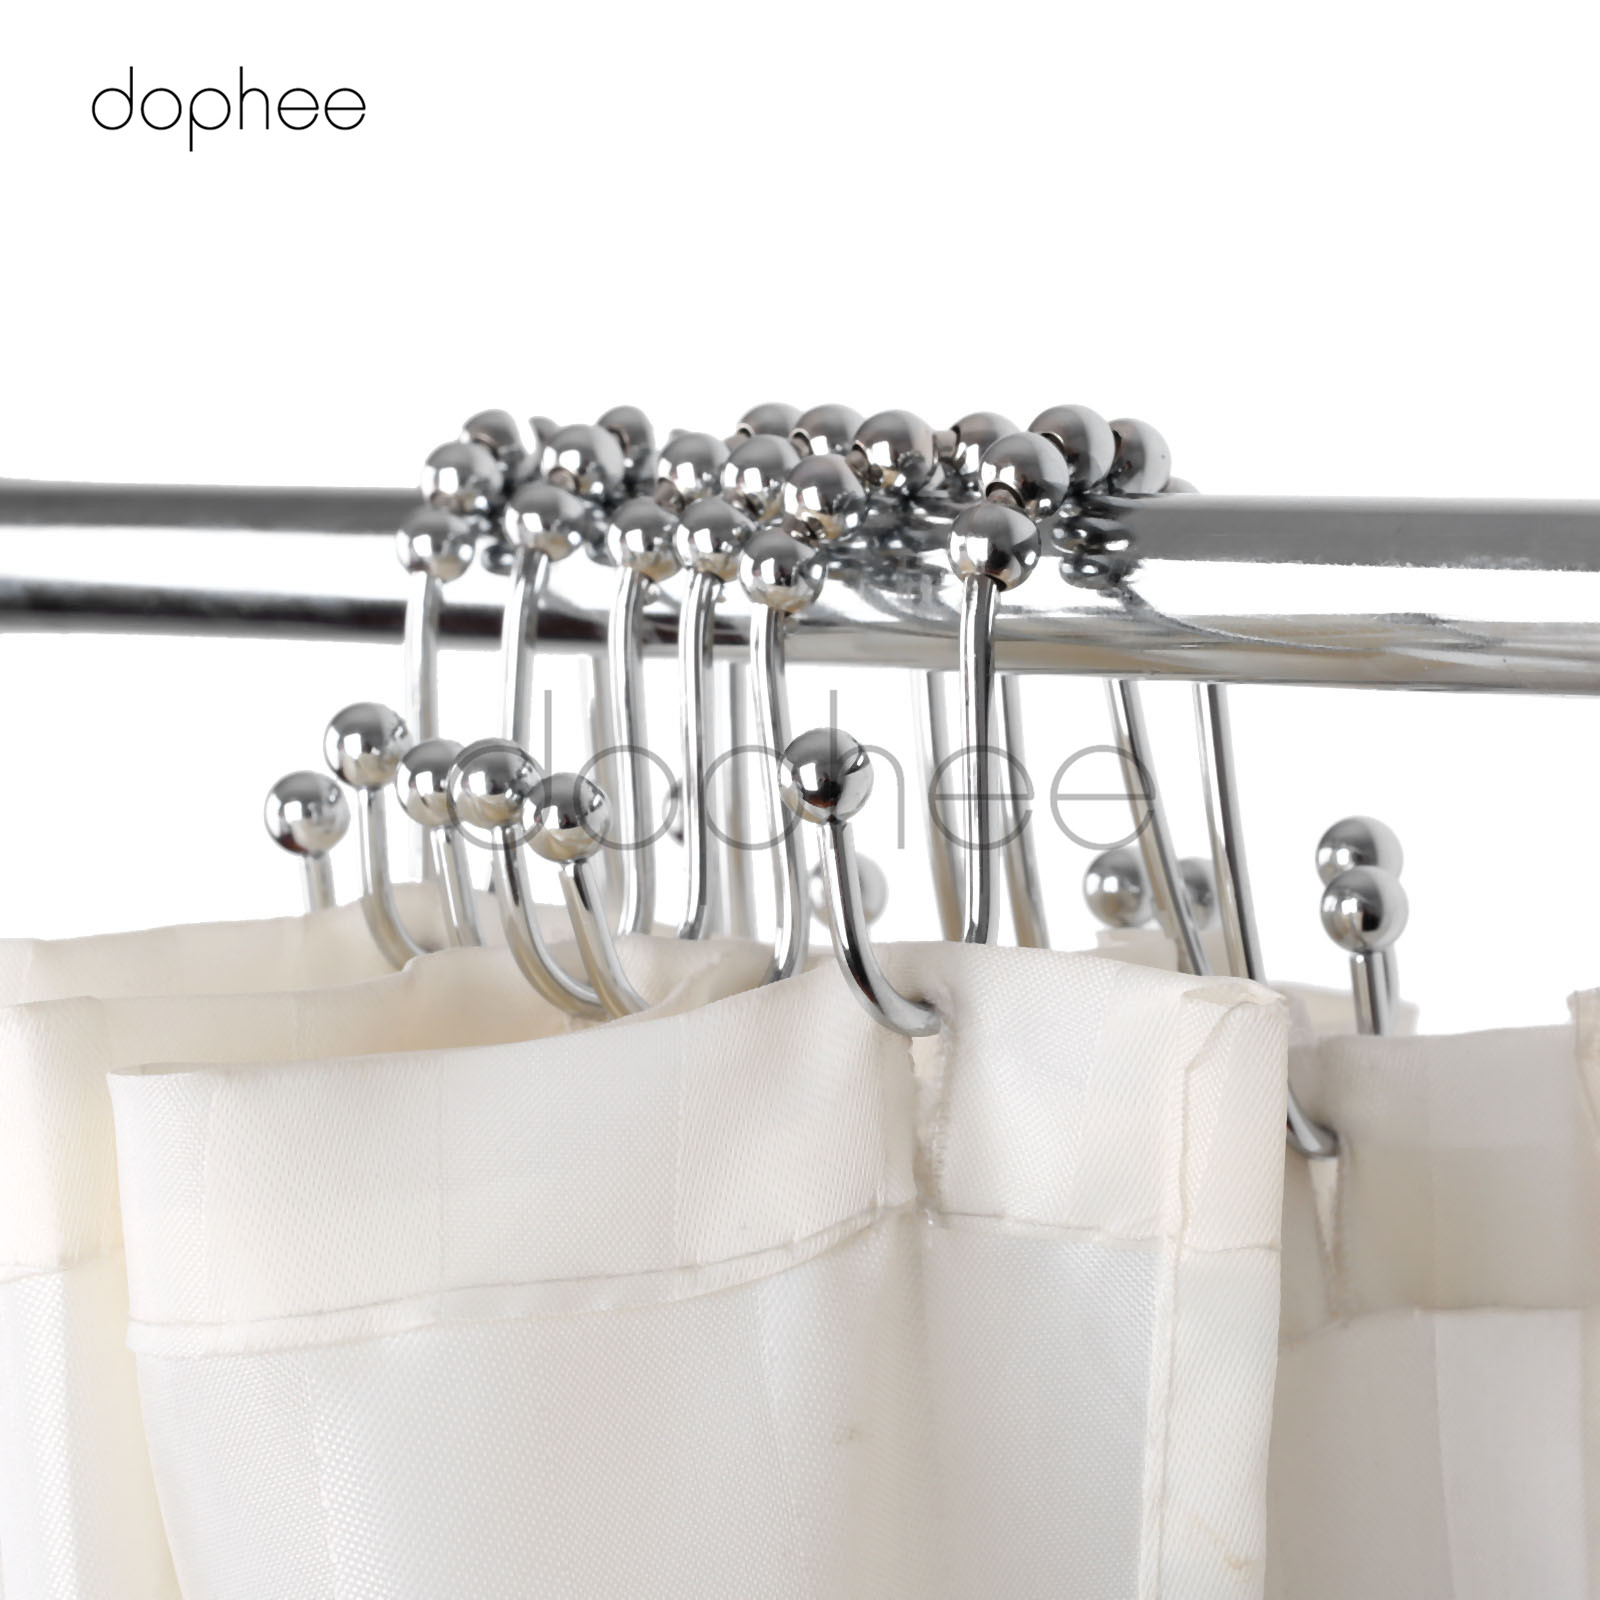 Us 9 54 36 Off Dophee 12pcs Bow Shaped Glide Shower Curtain Hooks Stainless Steel 5 Brass Roller Balls Double Hooks Curtain Decoration In Bathroom